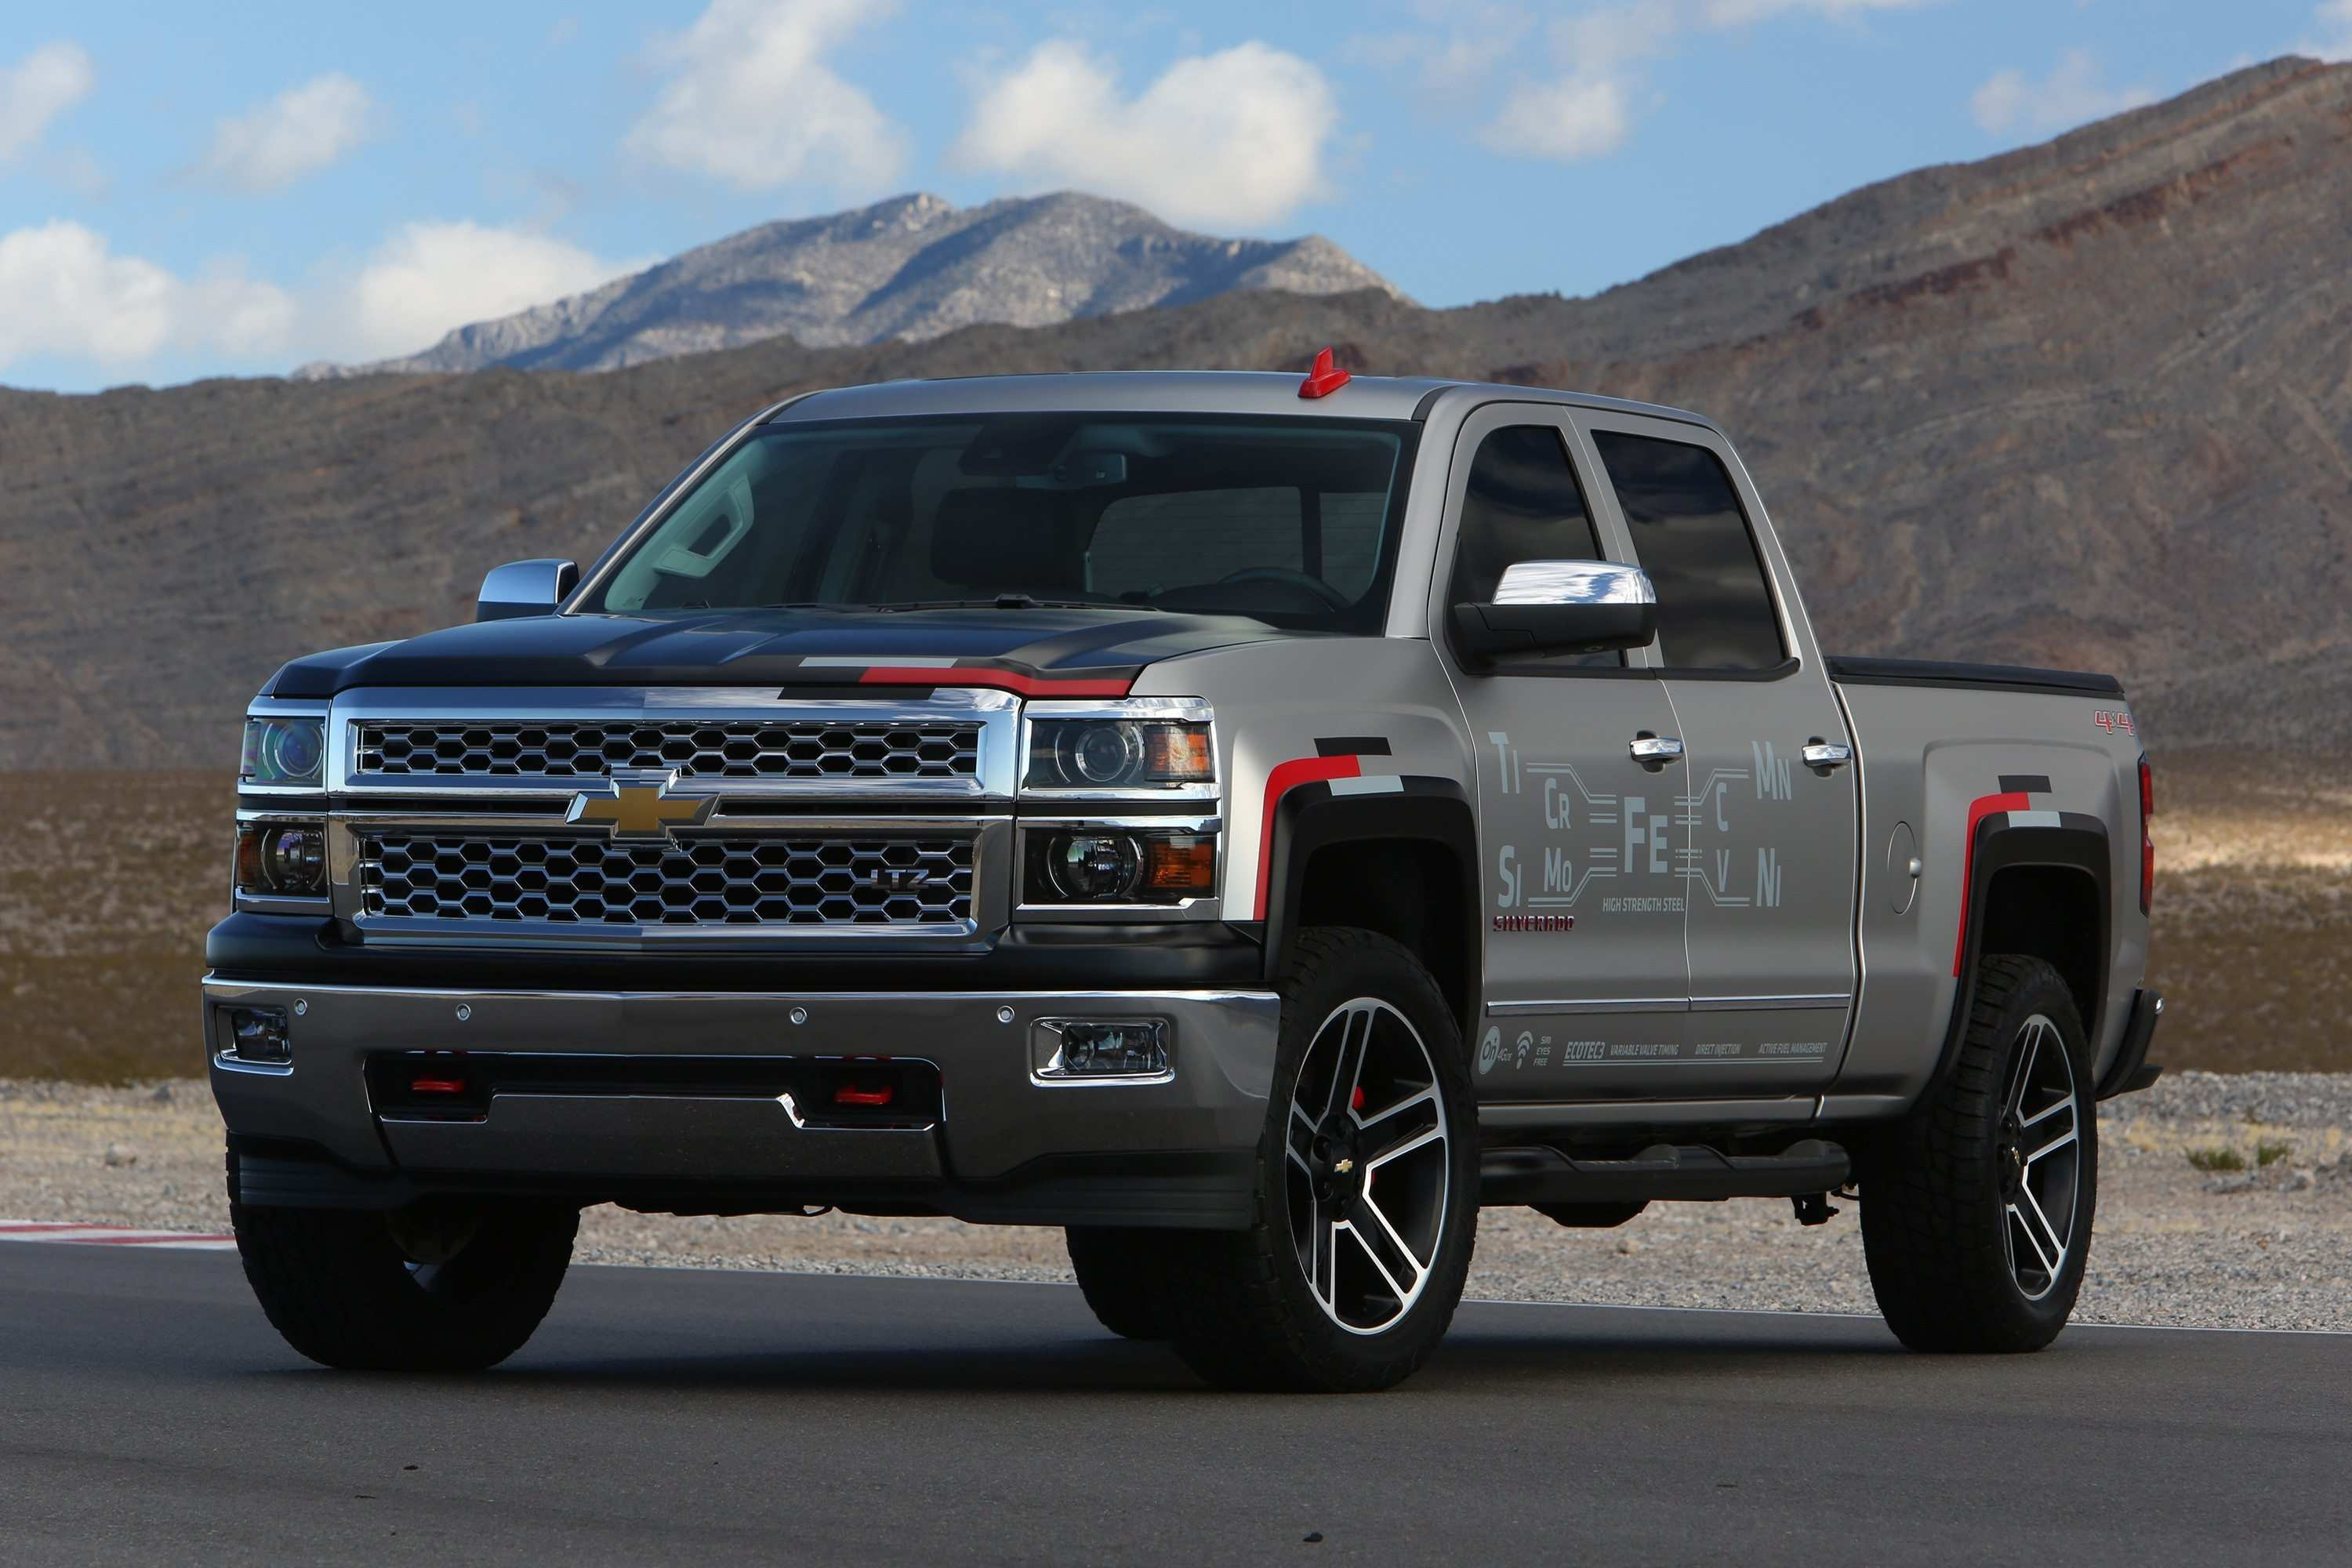 33 All New 2020 Chevy Reaper New Concept